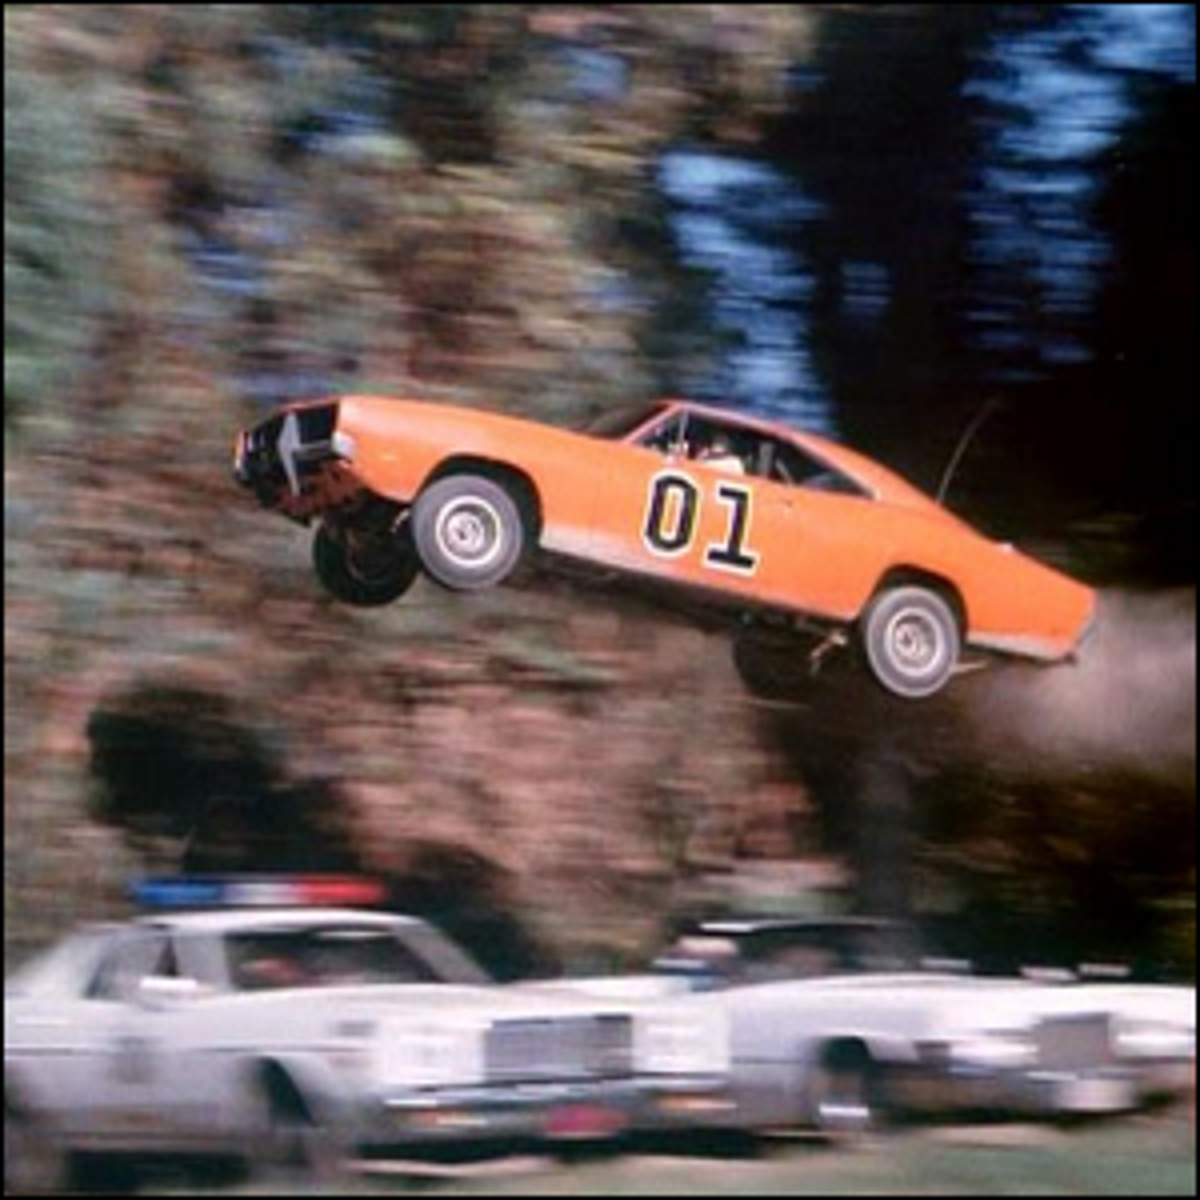 One of the many car jumps shown in The Dukes of Hazzard.